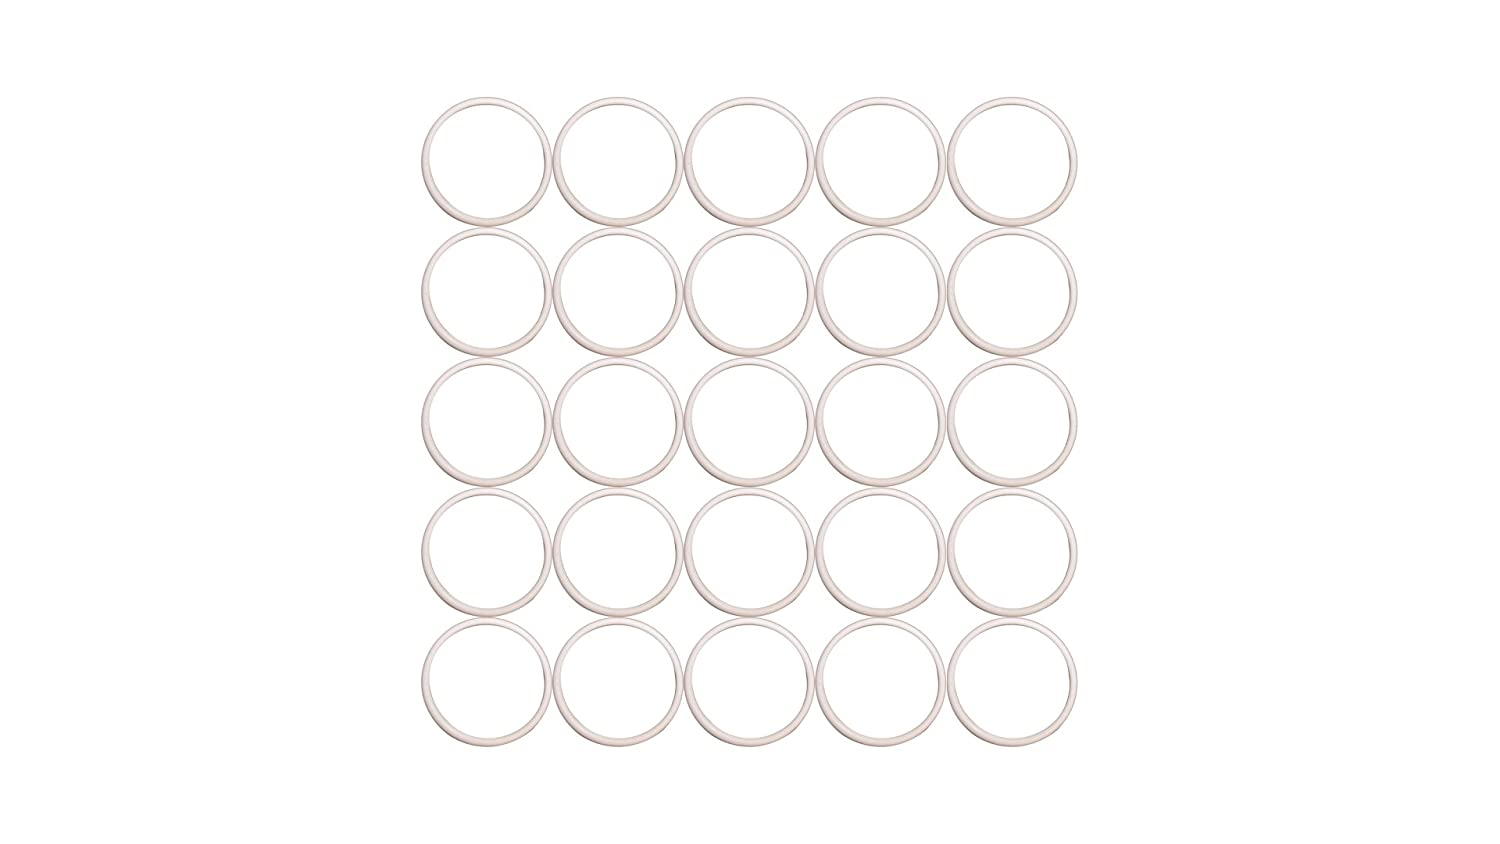 7//8 ID 1 OD Sterling Seal ORTFE020x25 Number-020 Standard Teflon O-Ring Outstanding Weather Resistance 1 OD 7//8 ID Polytetrafluoro-Ethylene Sur-Seal Pack of 25 Pack of 25